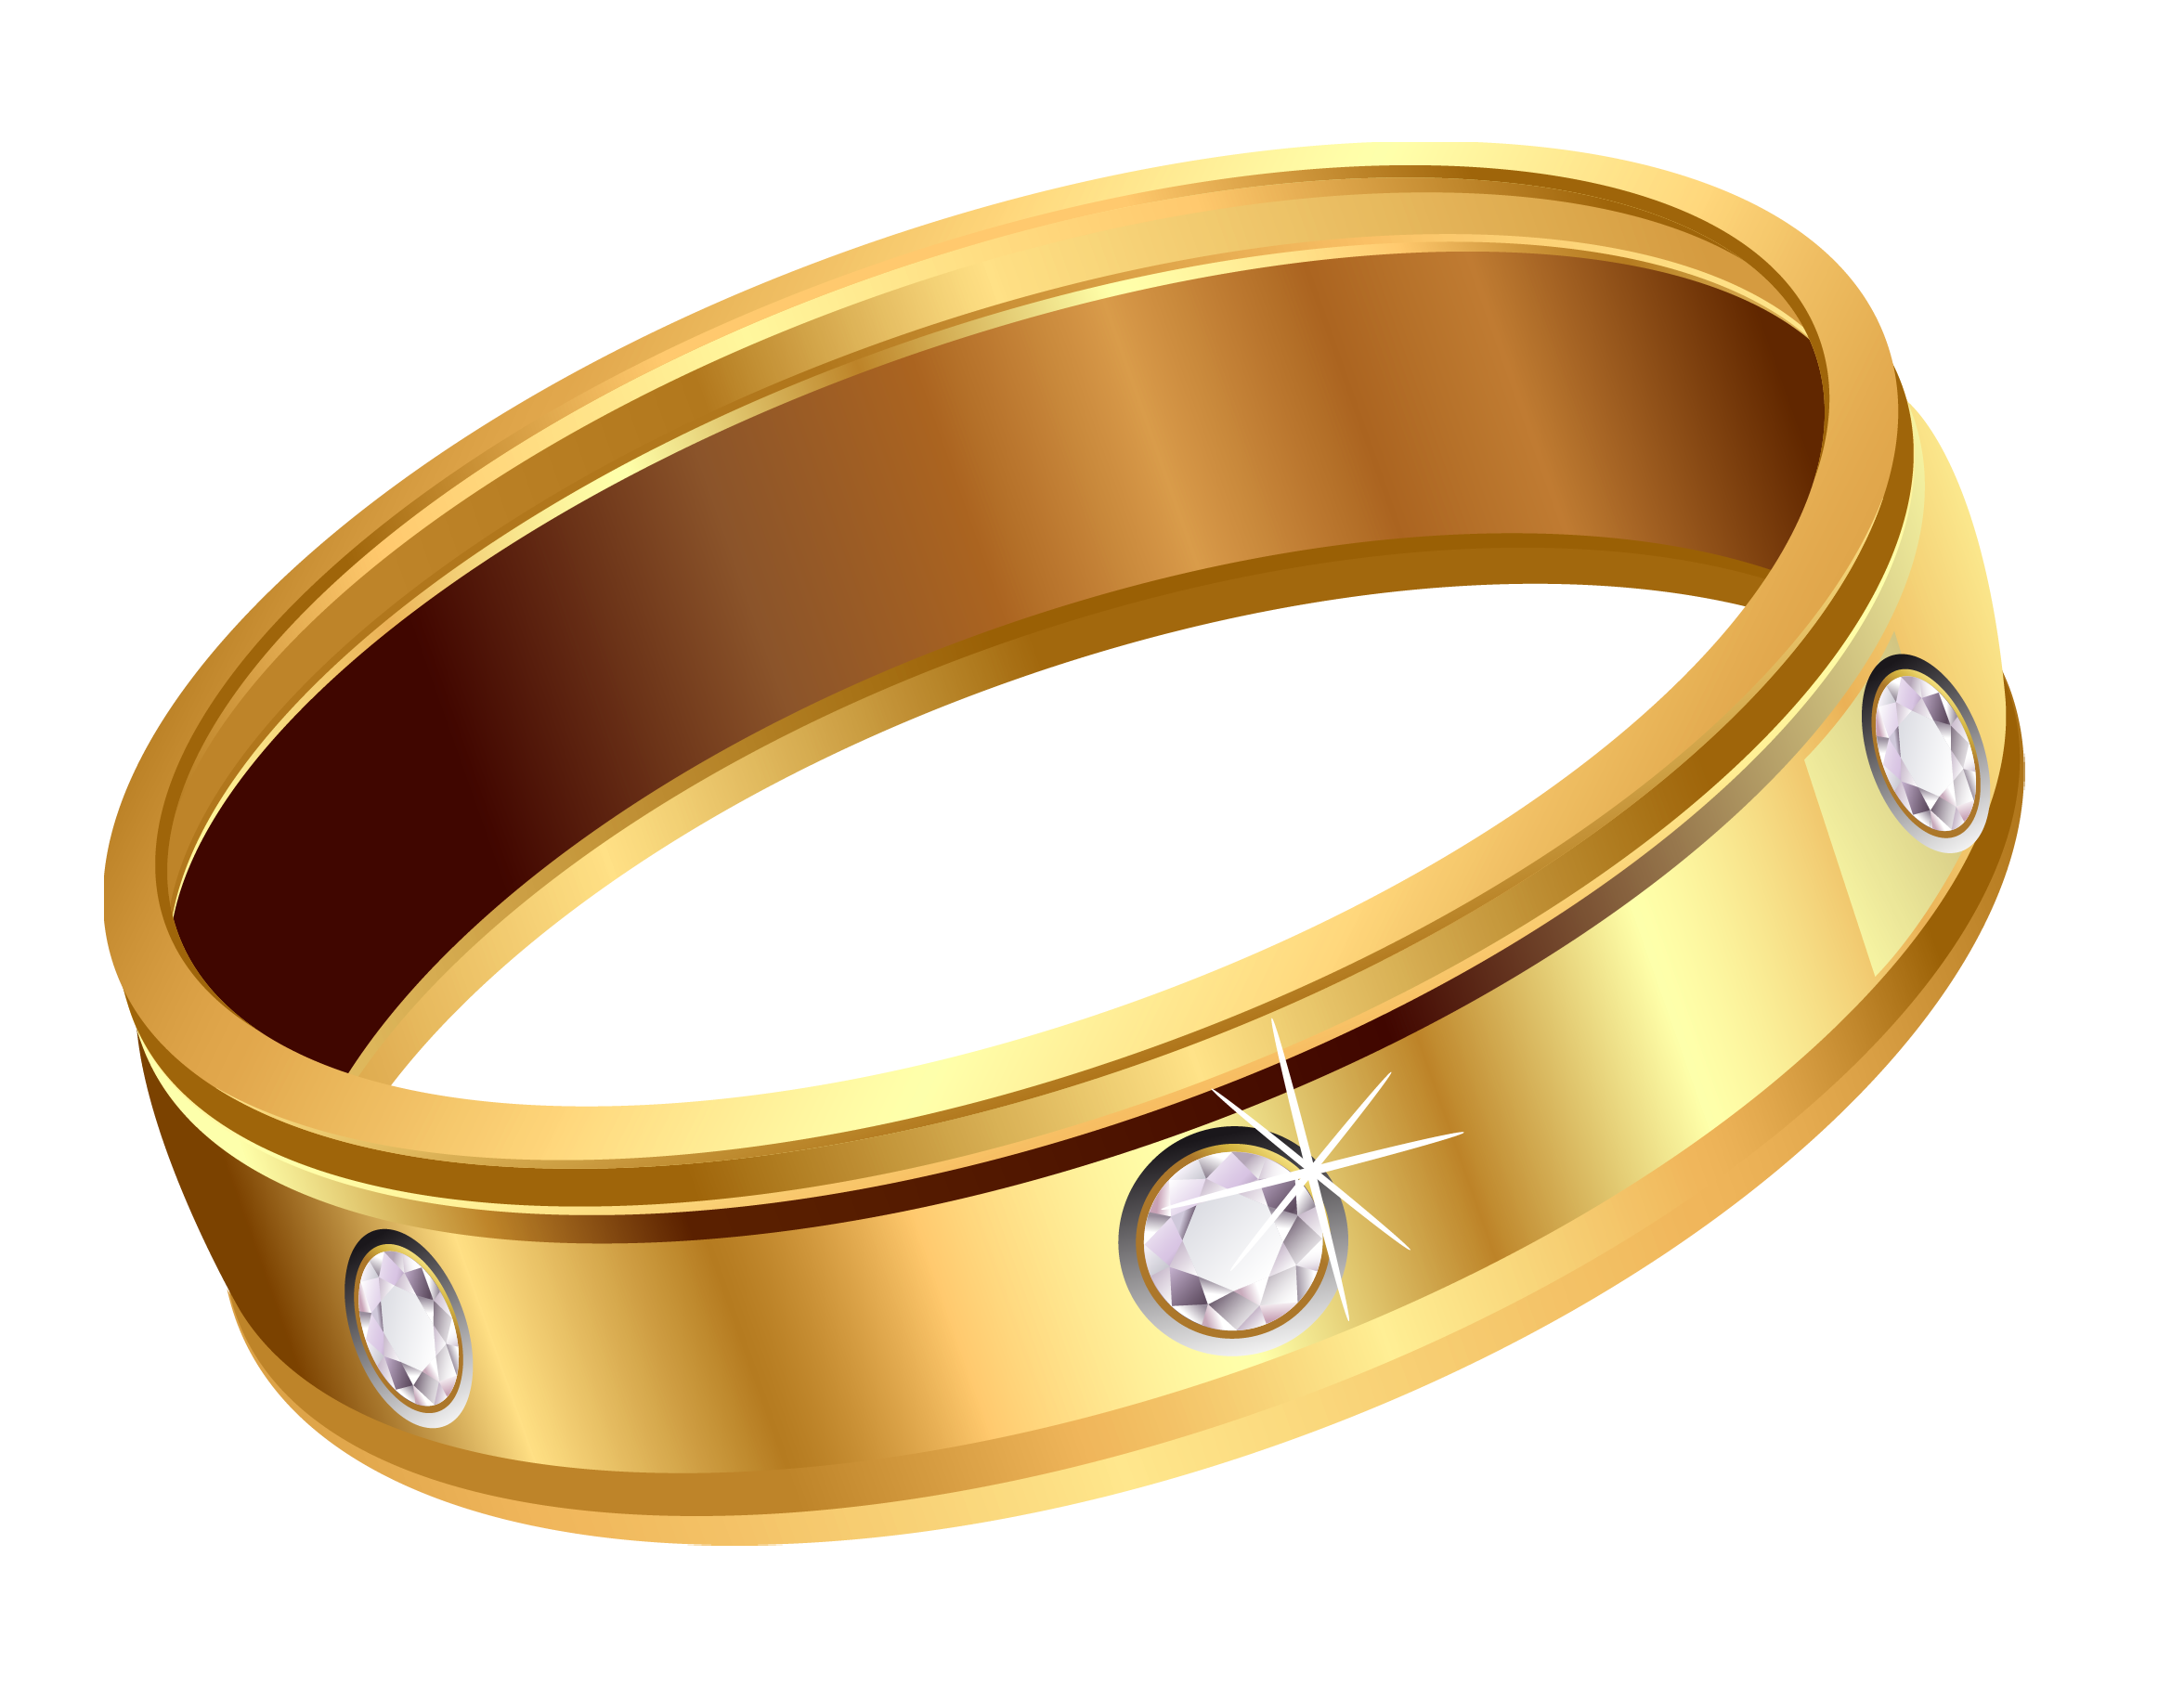 Transparent ring with diamonds. Necklace clipart gold traditional